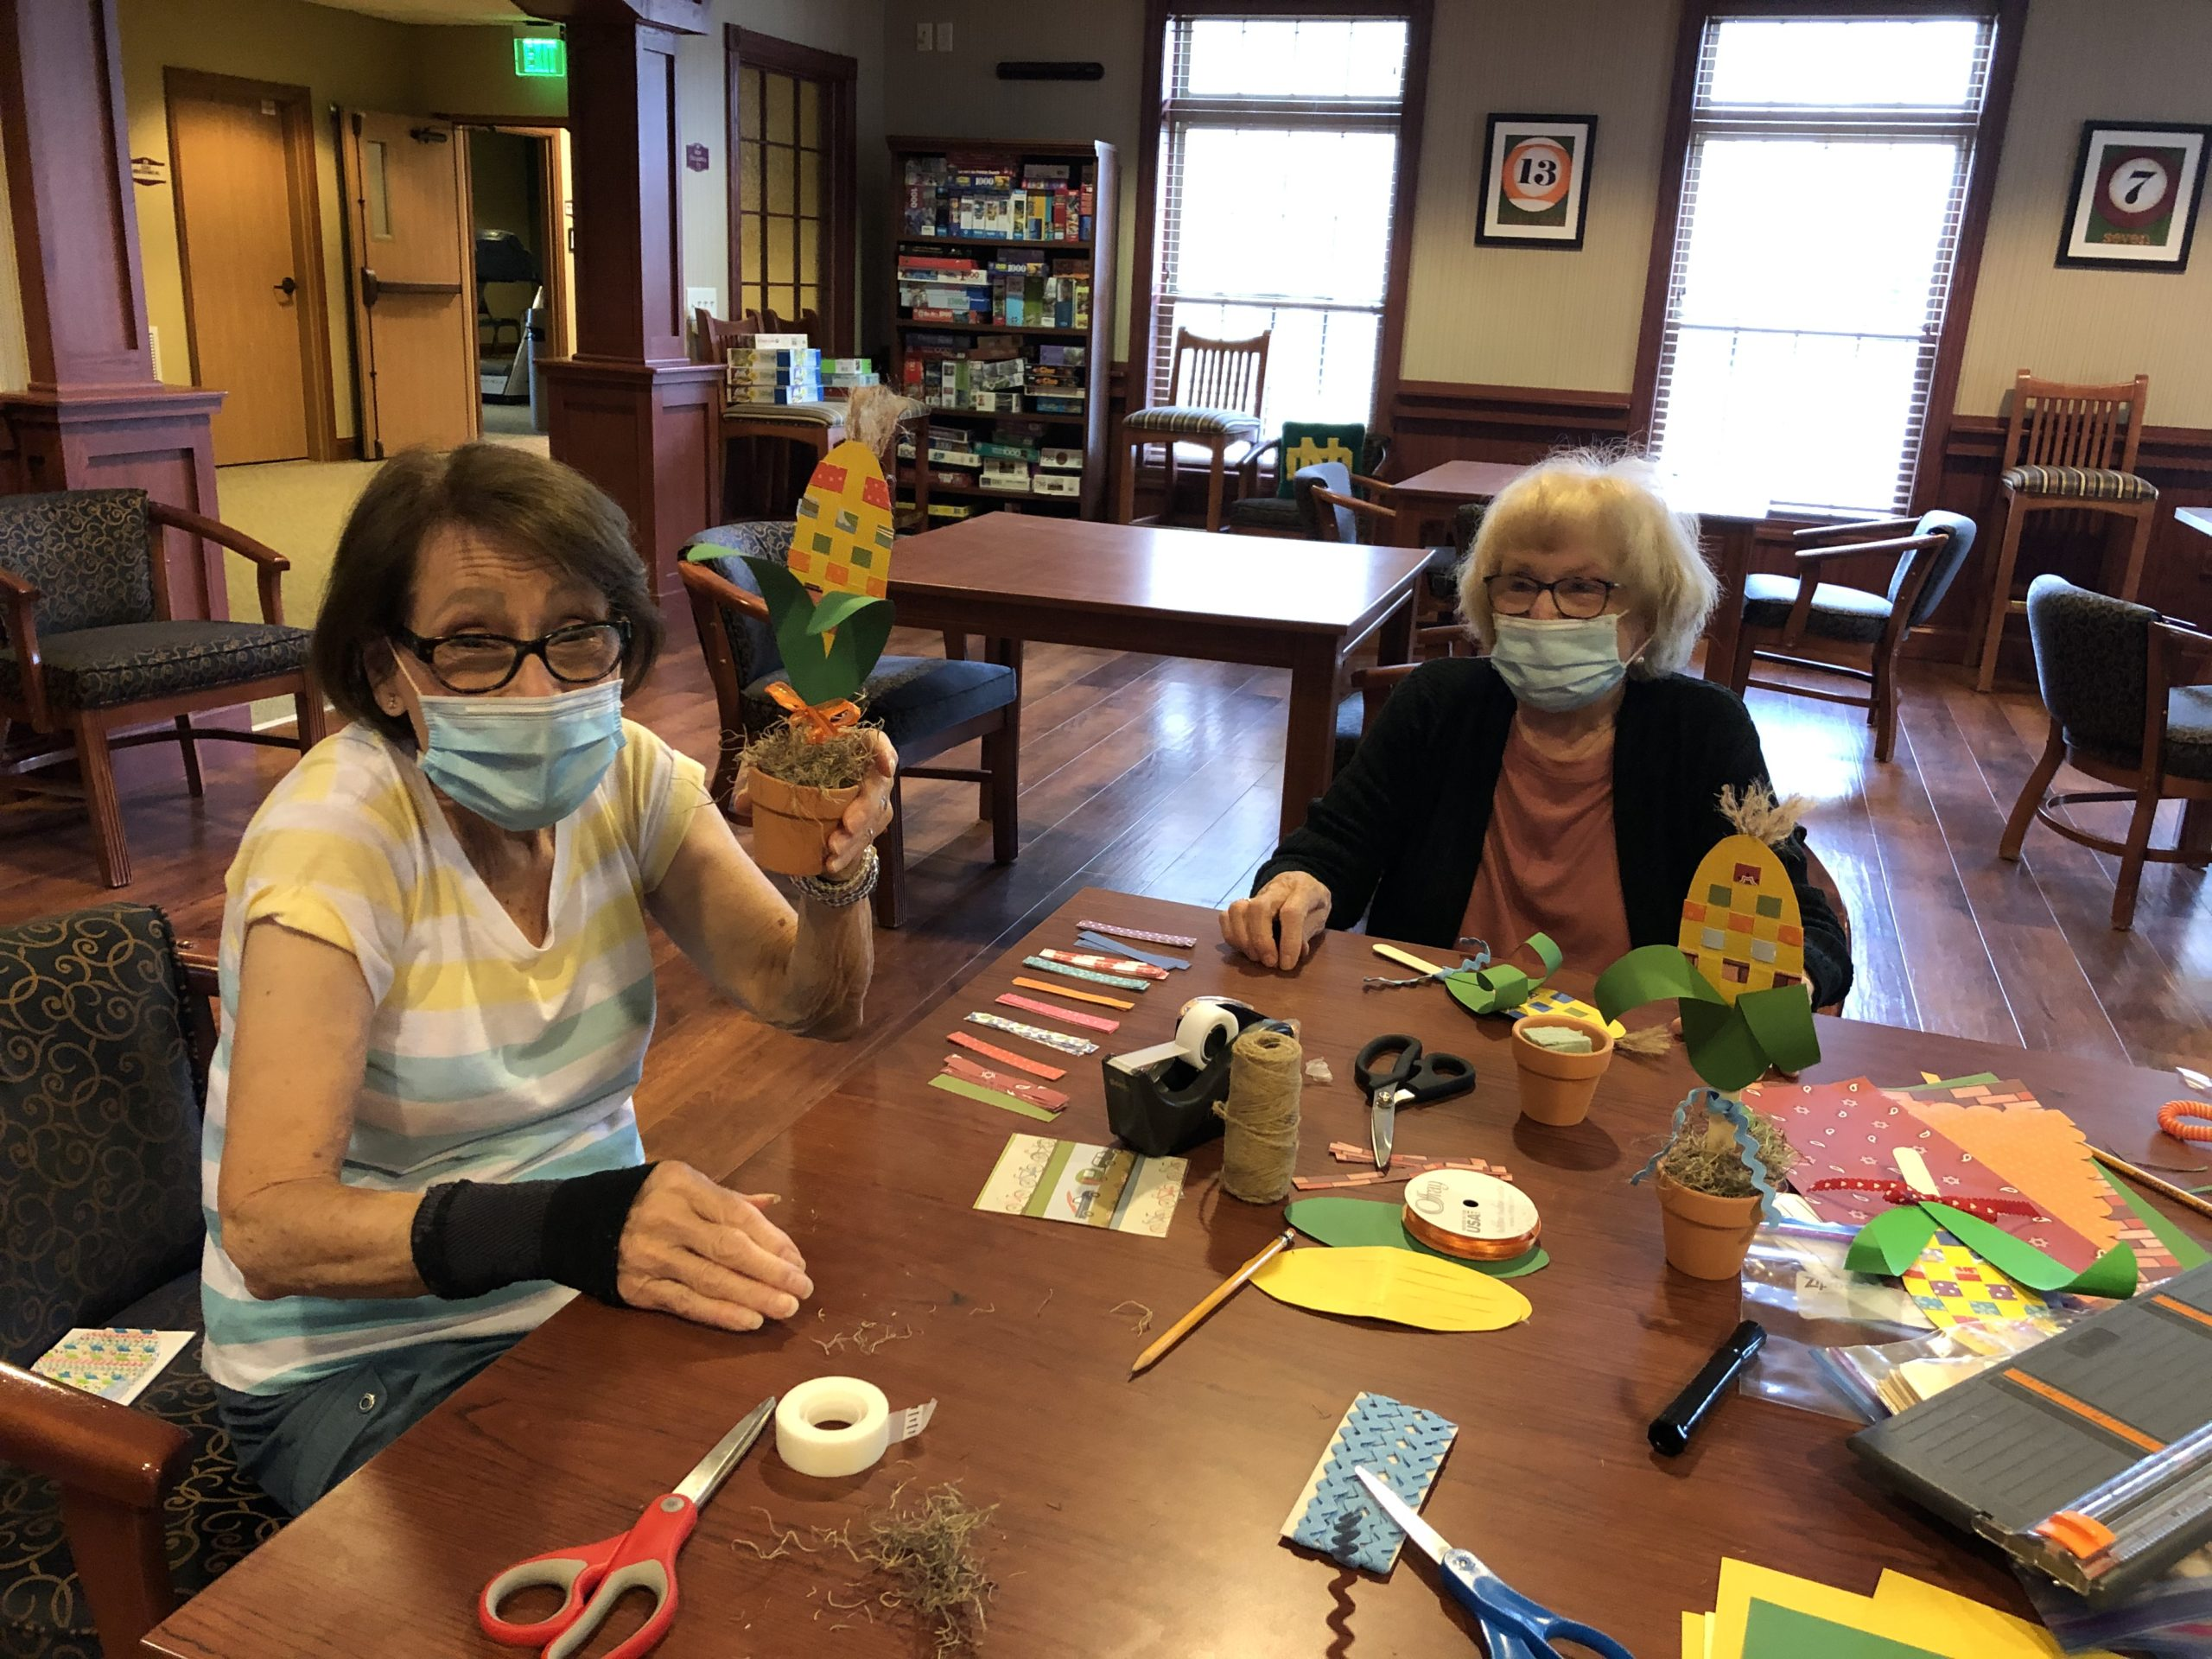 Edie and Gloria were busy making cheerful corn decorations.